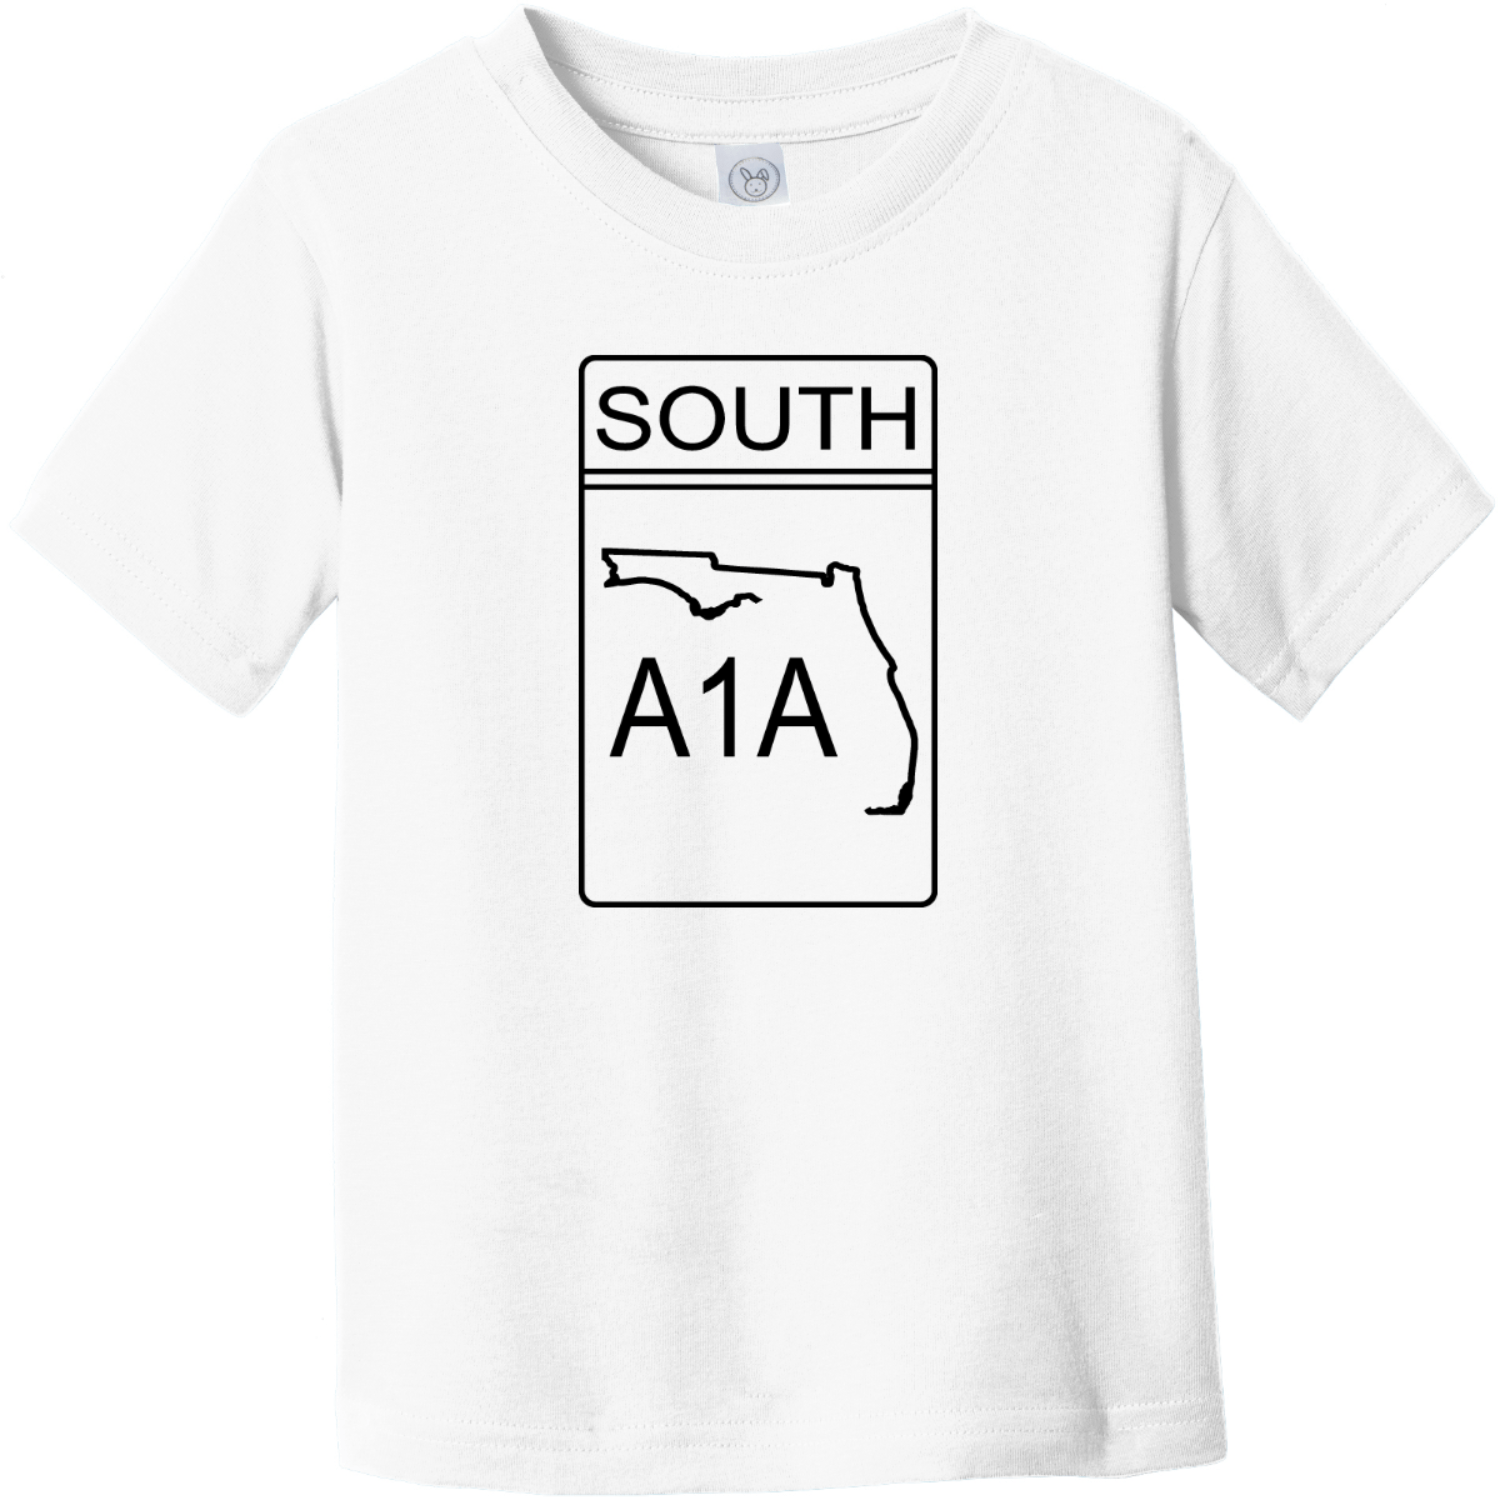 A1A South Road Sign Toddler T-Shirt White Rabbit Skins Toddler Fine Jersey Tee RS3321